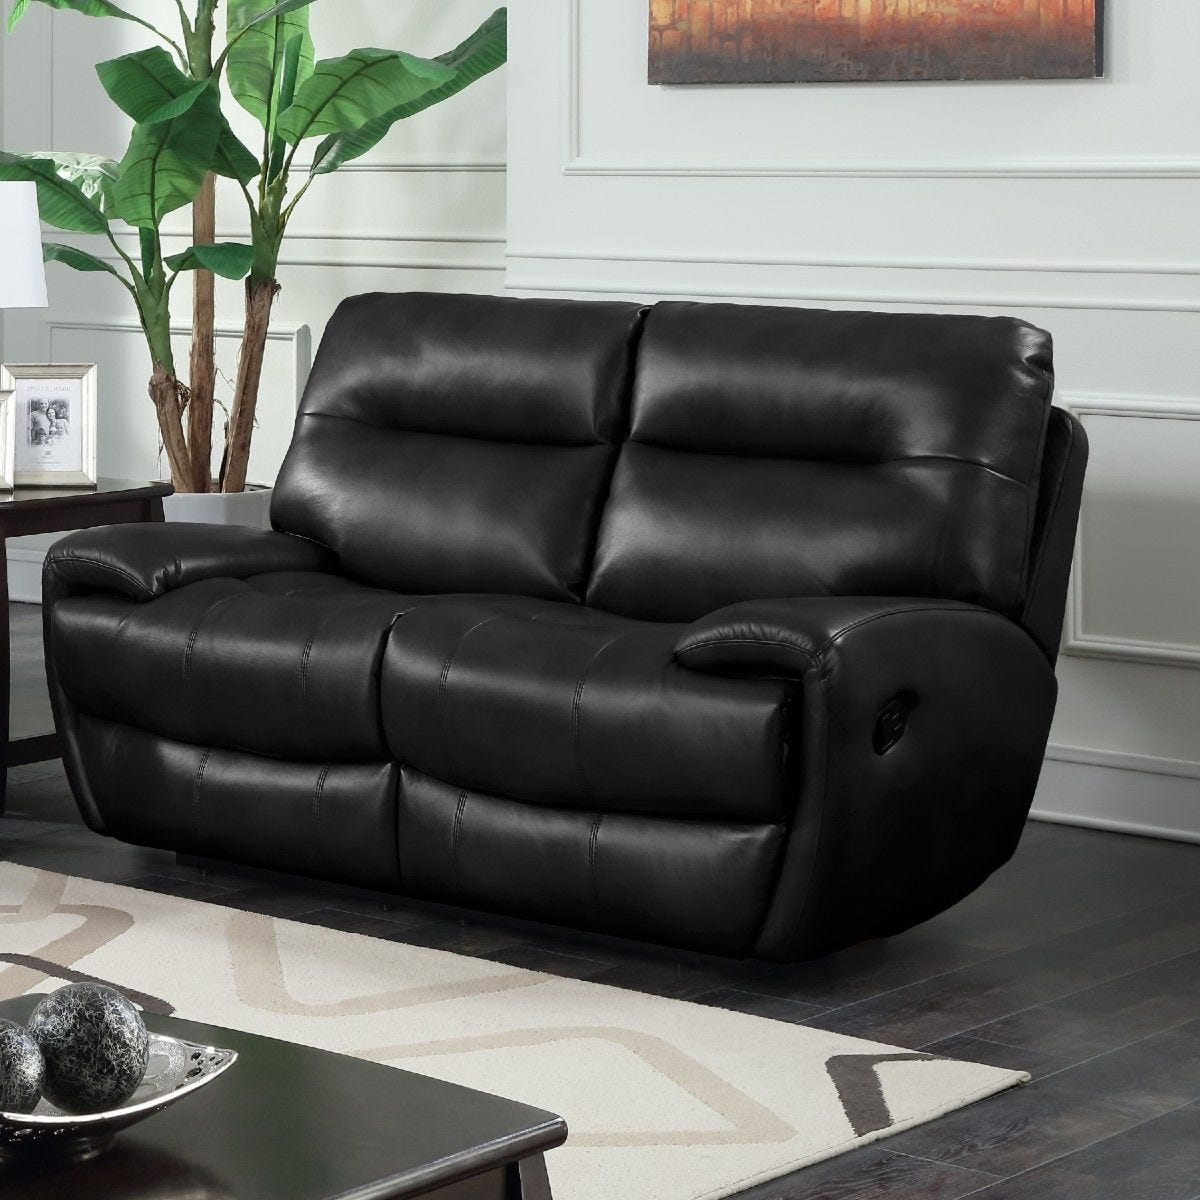 Bampton Recliner 2 Seater Faux Leather Sofa Black